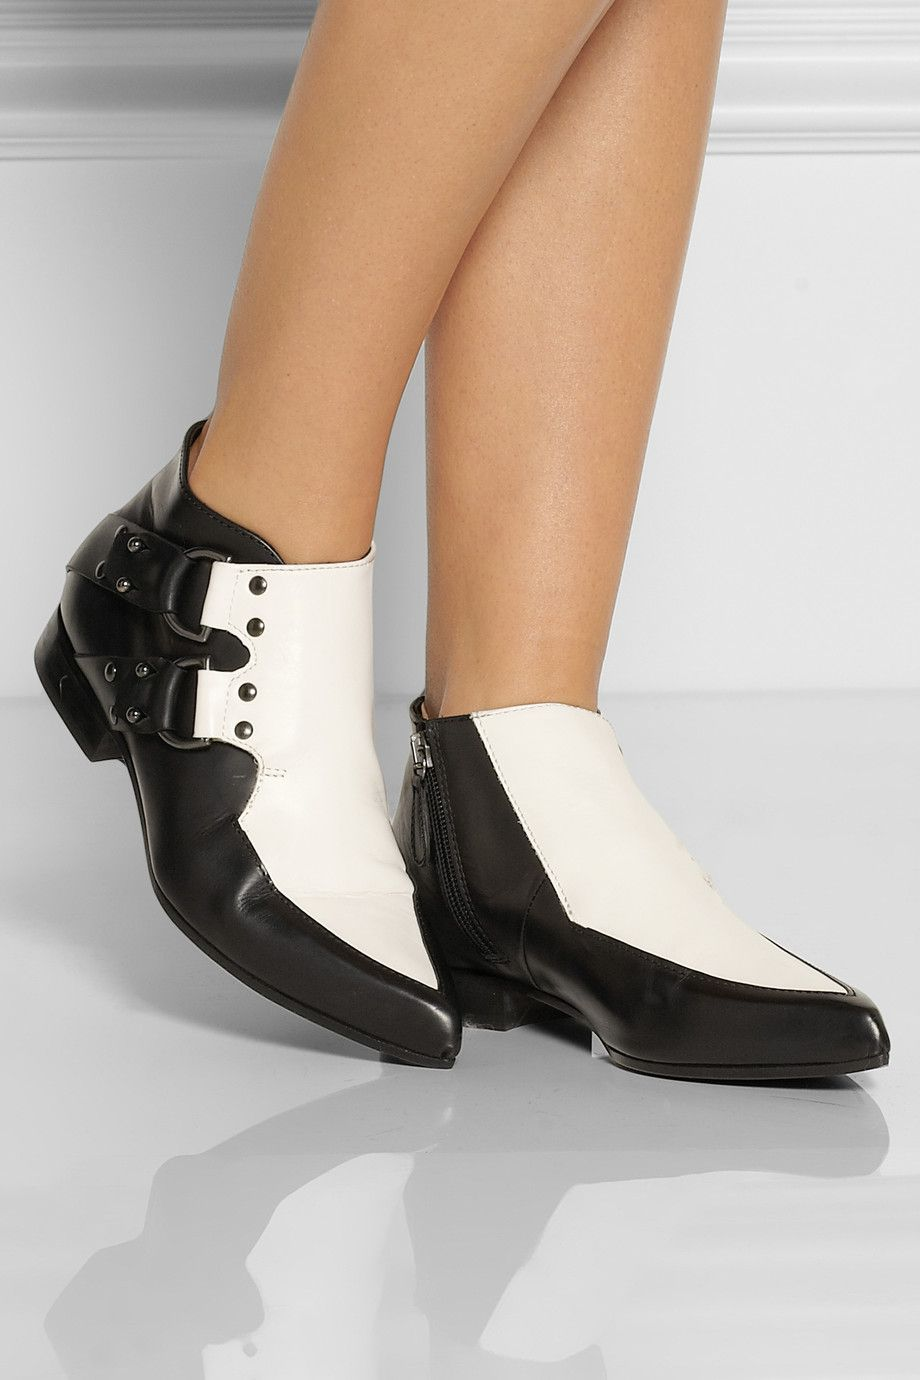 dc487cdcfe96 McQ Alexander McQueen - Two-tone leather ankle boots